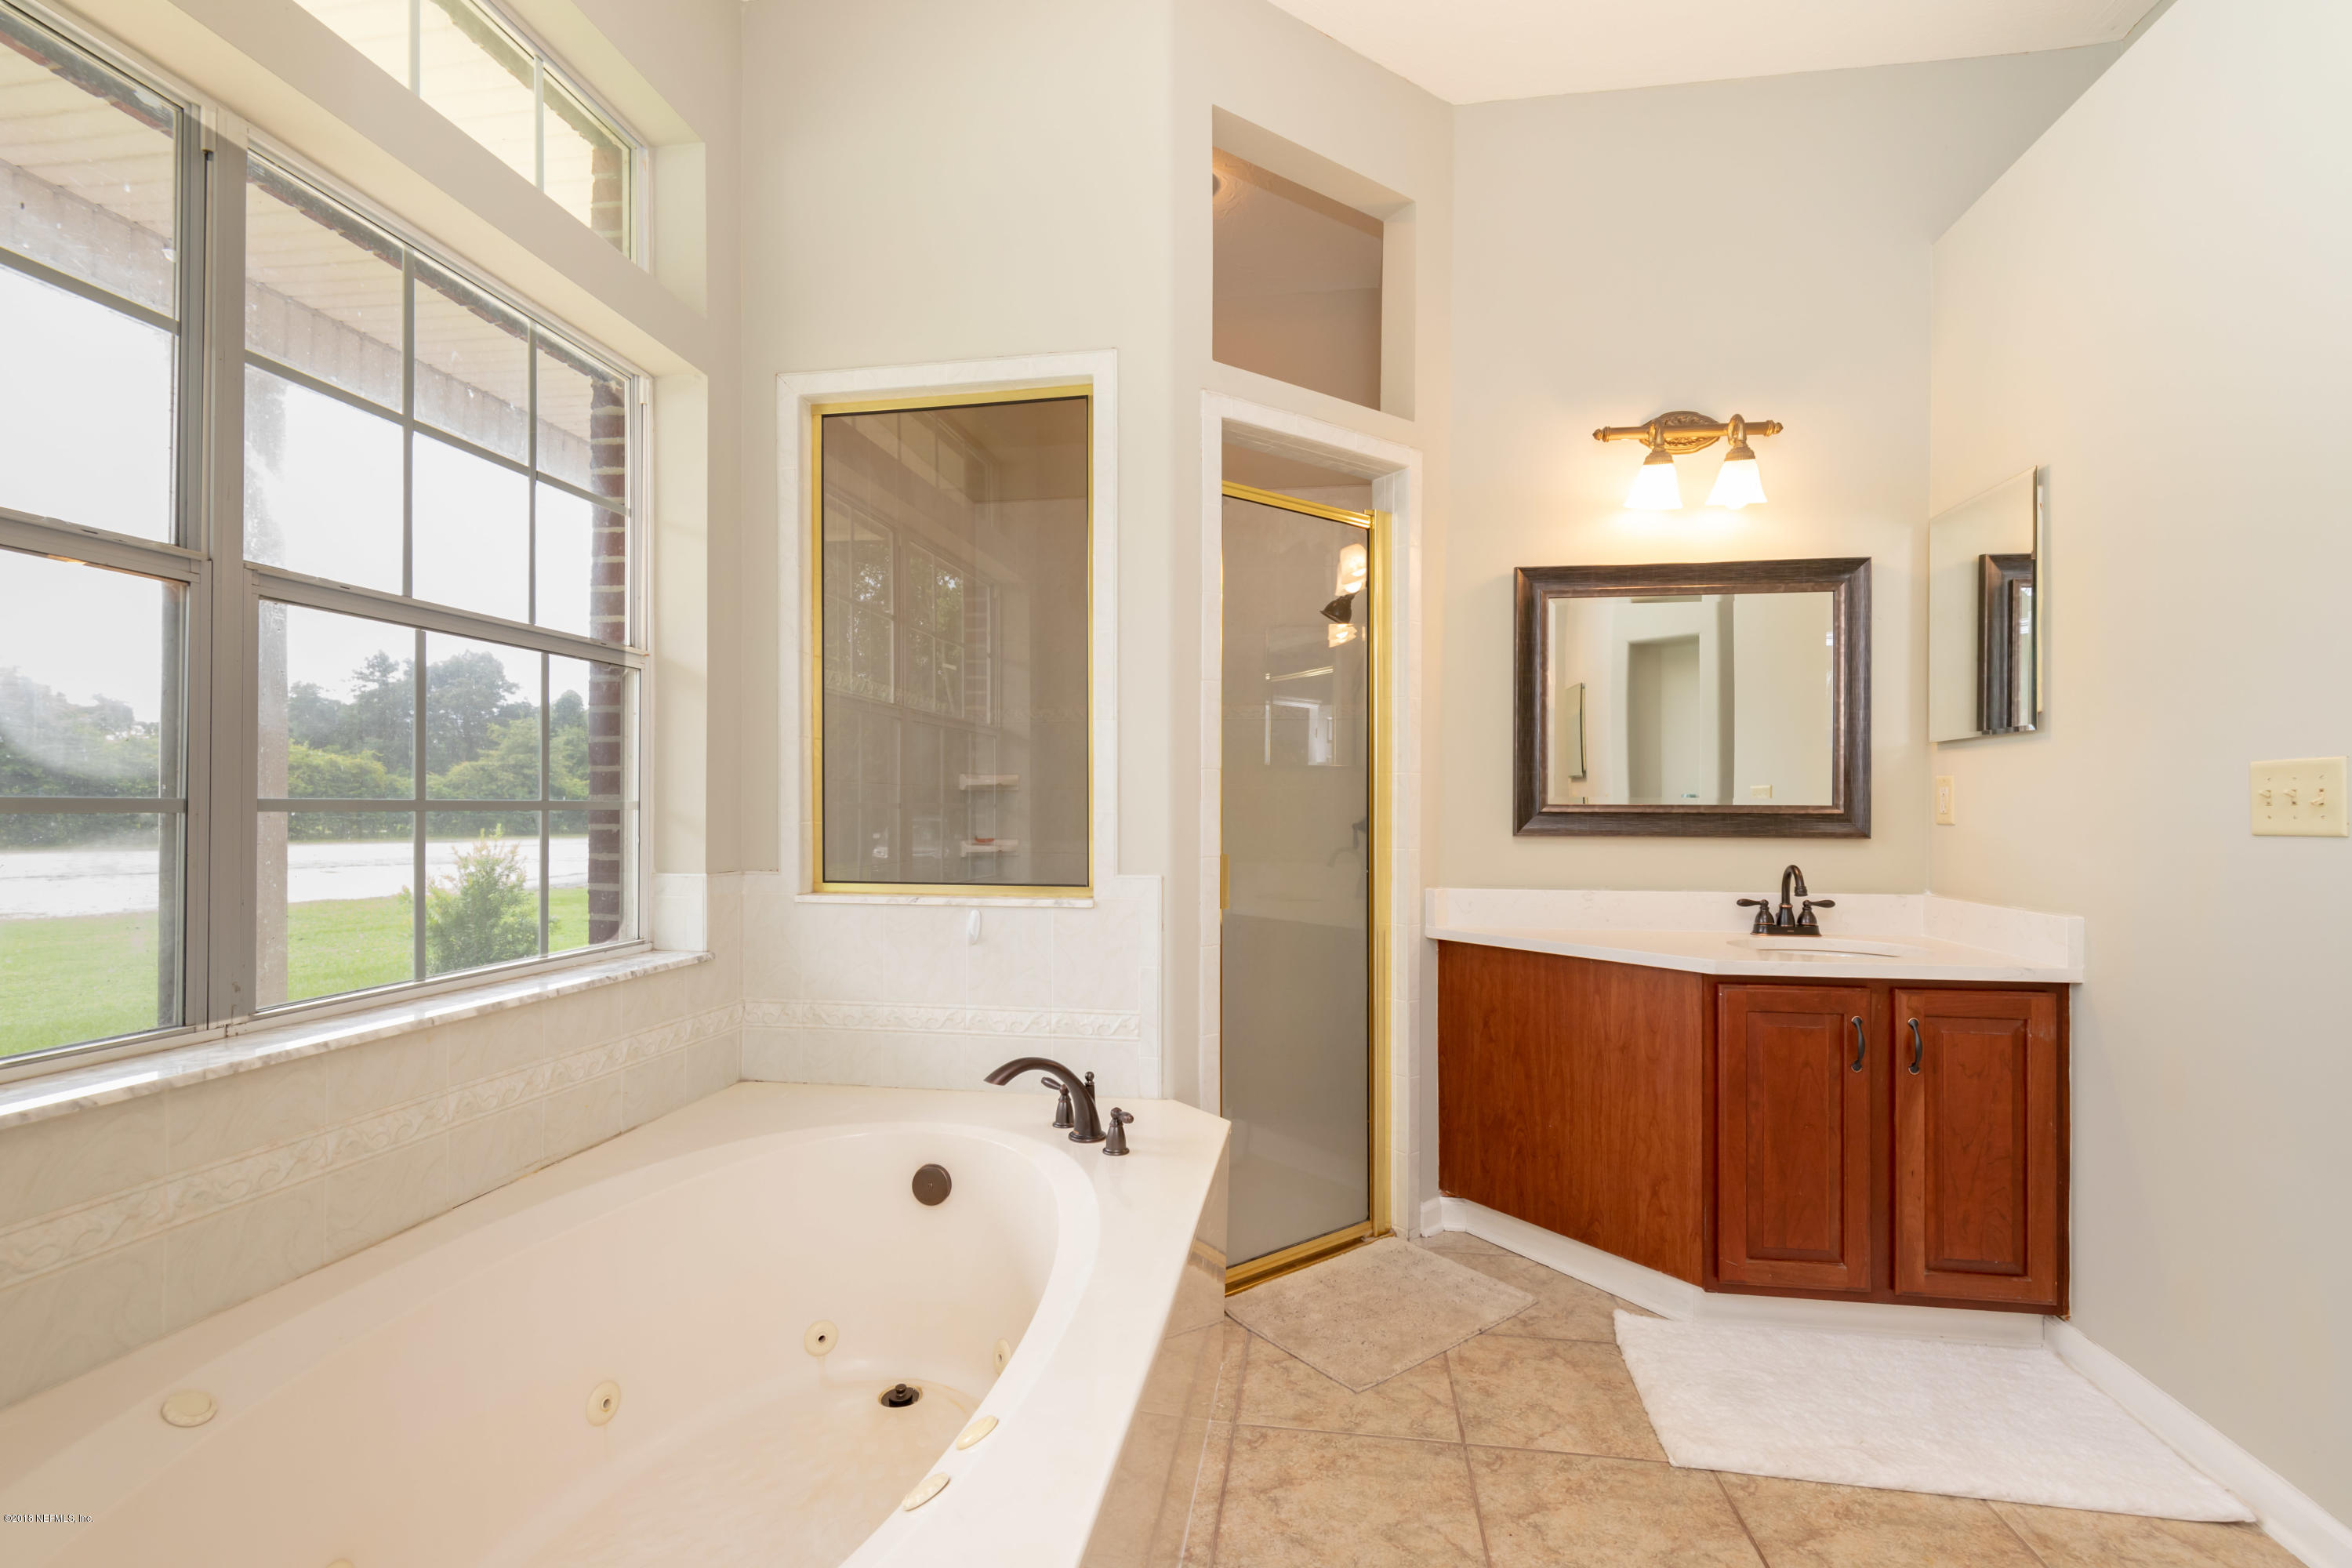 355 BAR-B-RANCH, ST AUGUSTINE, FLORIDA 32092, 3 Bedrooms Bedrooms, ,3 BathroomsBathrooms,Farms,For sale,BAR-B-RANCH,949234